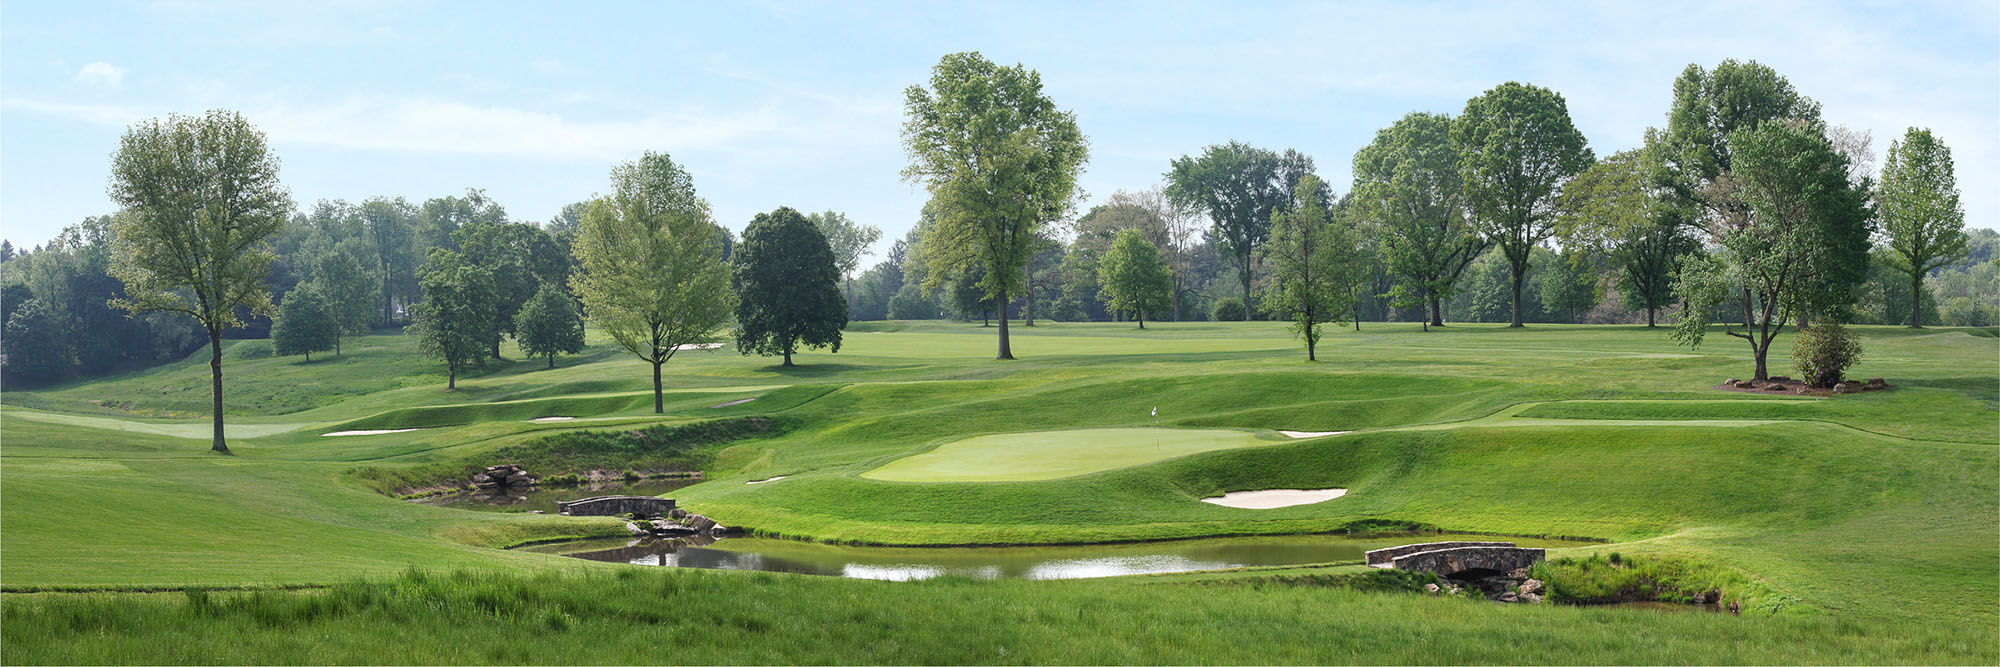 Golf Course Image - Pittsburgh Field Club No. 16